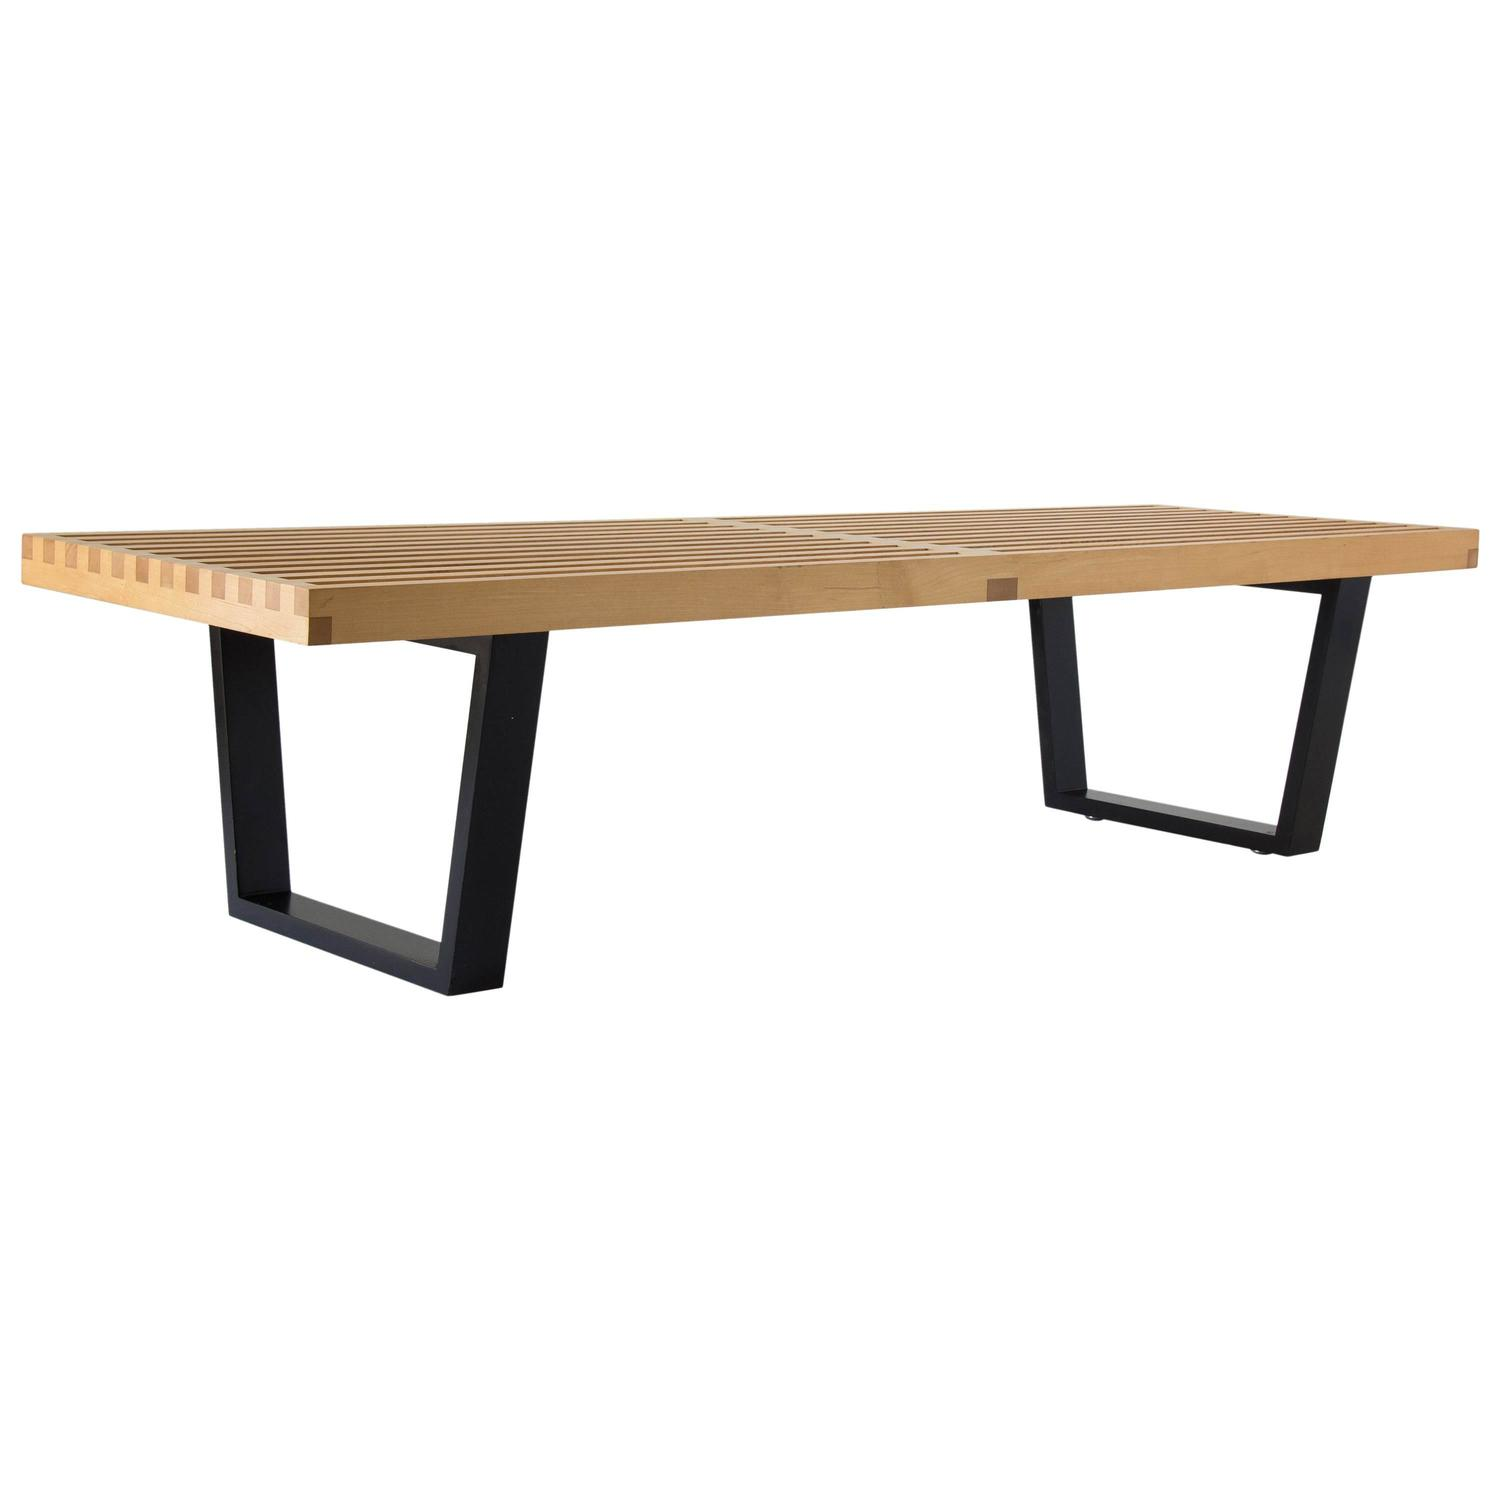 George Nelson Platform Bench For Sale At 1stdibs